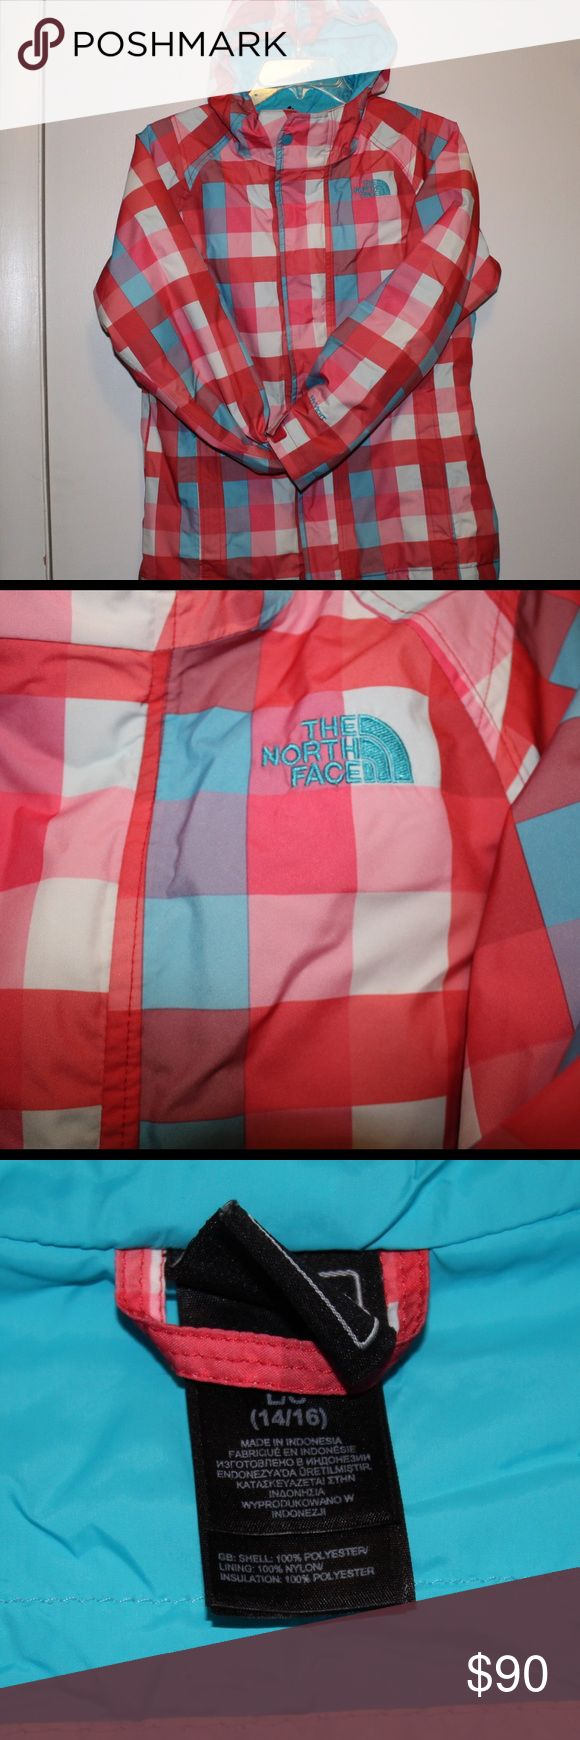 Girls North Face Winter Jacket Girls North Face: it's in good condition and great for the rain or snow! North Face Jackets & Coats